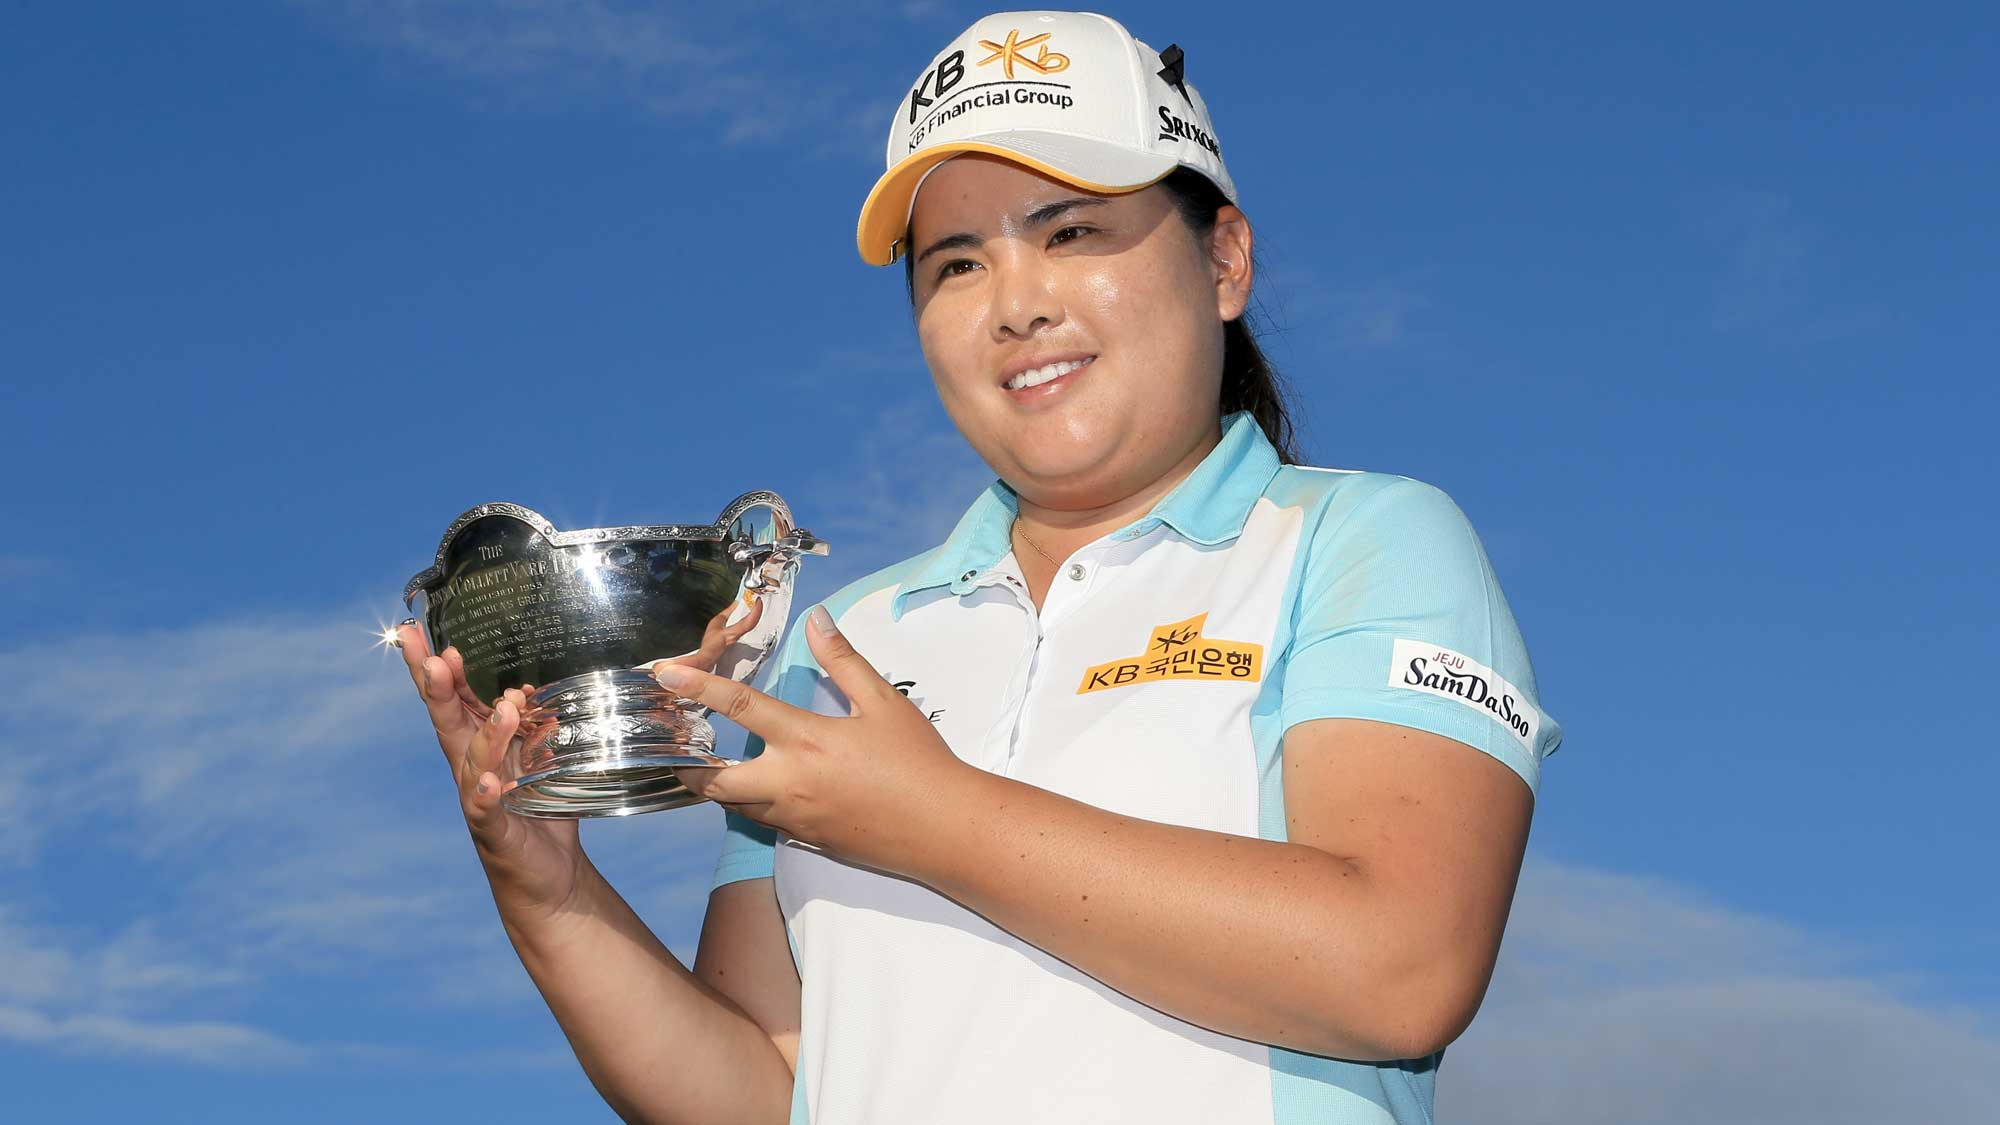 Inbee Park of South Korea poses with the Vare trophy during the final round of the CME Group Tour Championship at Tiburon Golf Club